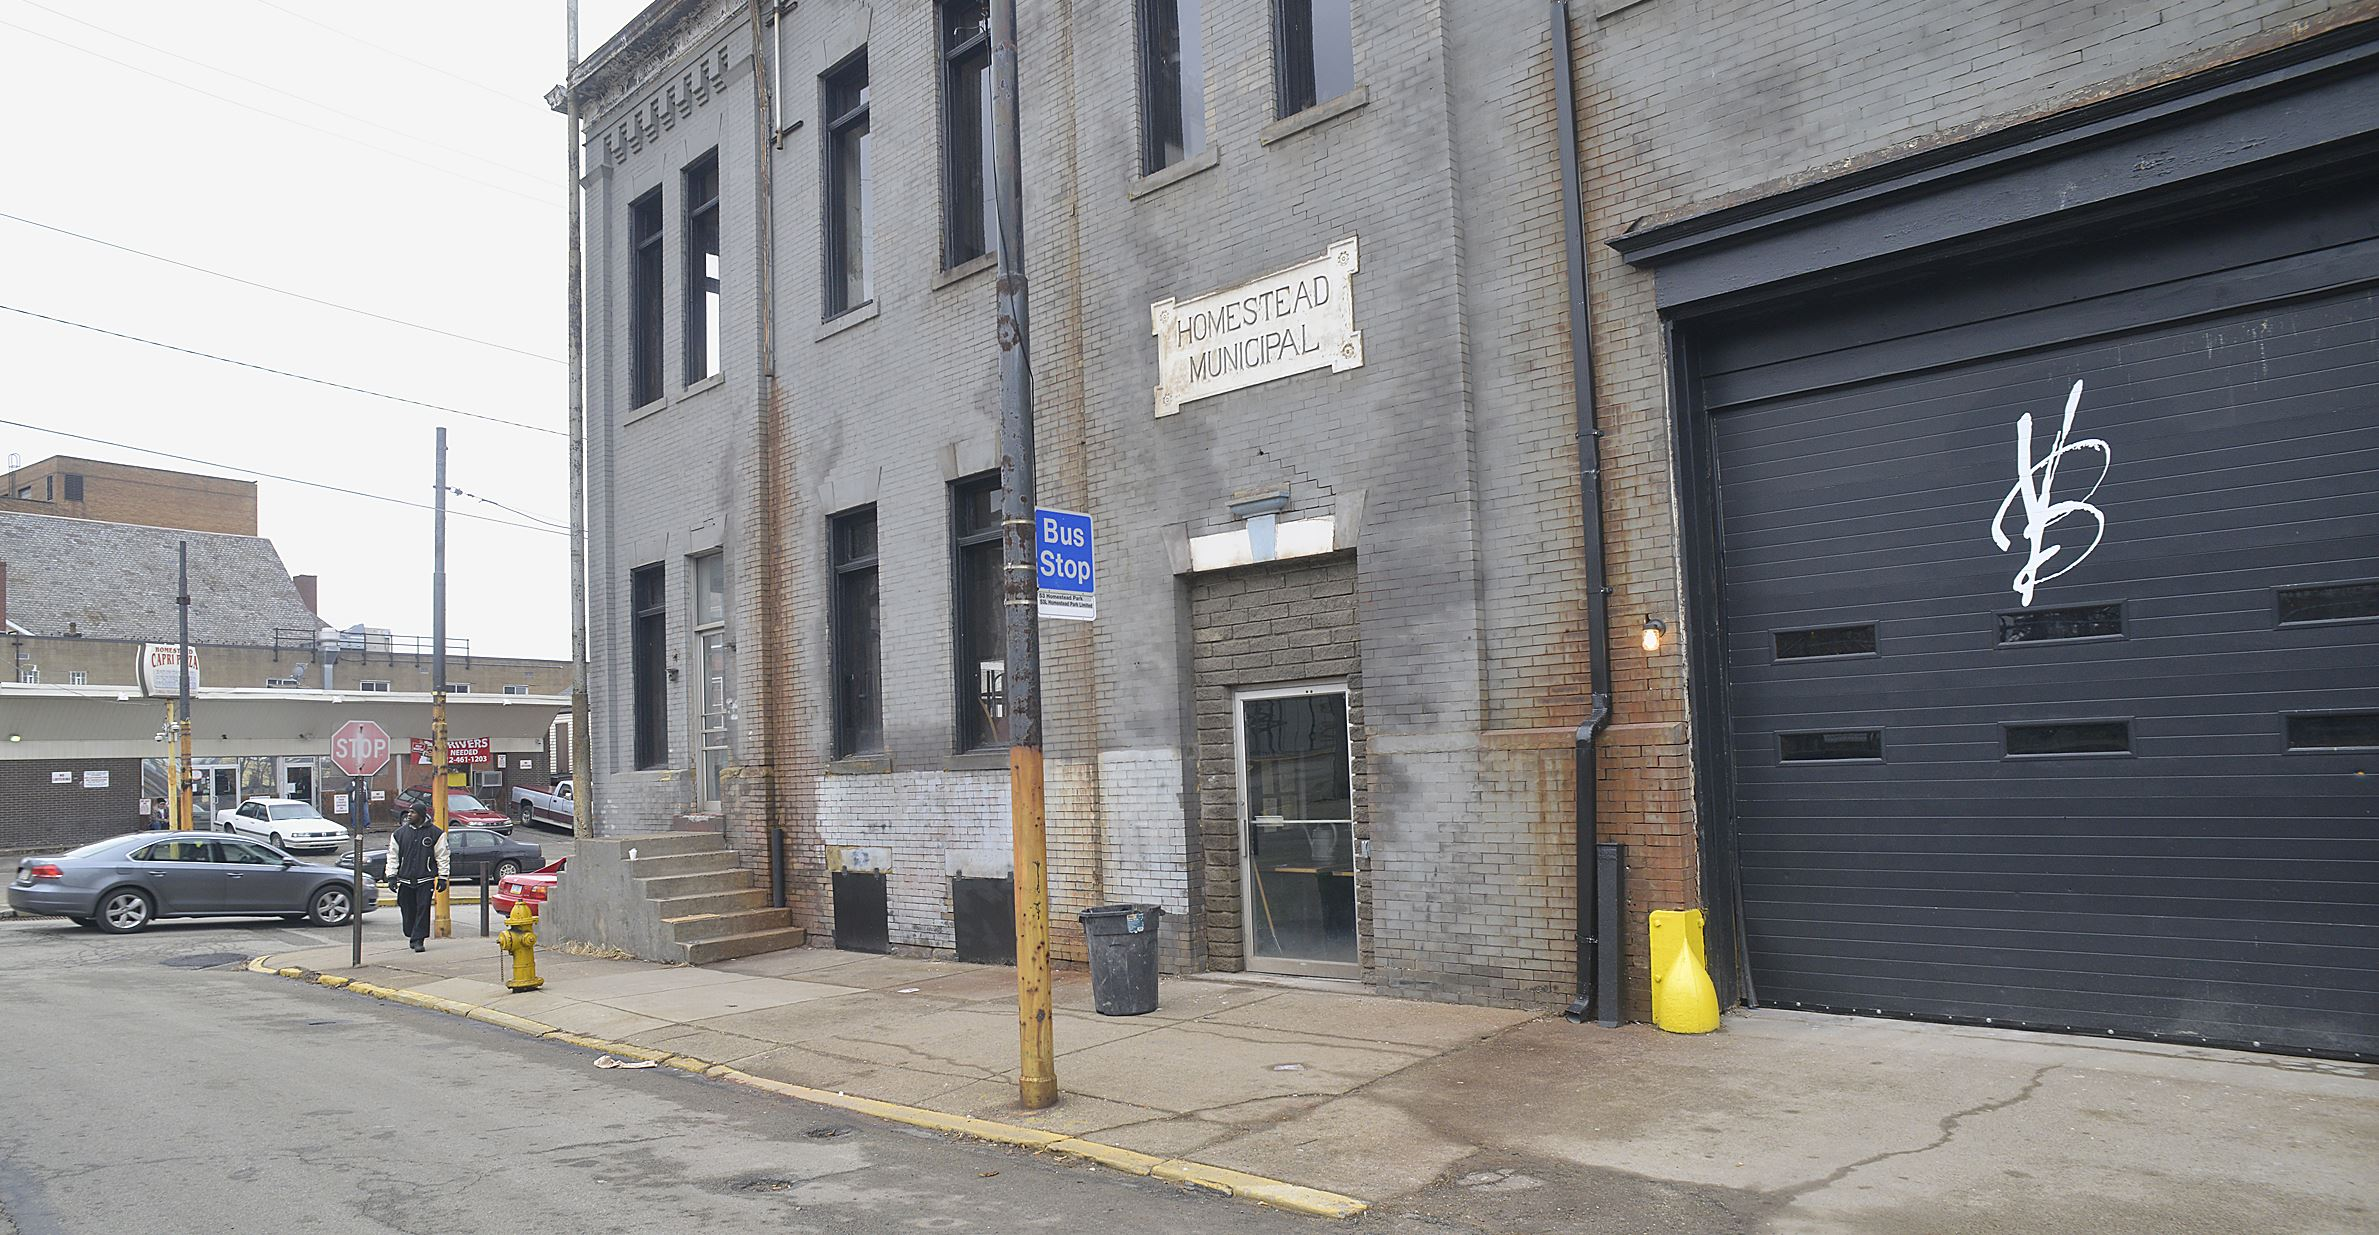 20150122lrvoodoofood14-13 Exterior at Amity and Ninth Ave where the new pub is being prepped to open in the old Homestead municipal building by Meadville's Voodoo Brewery.